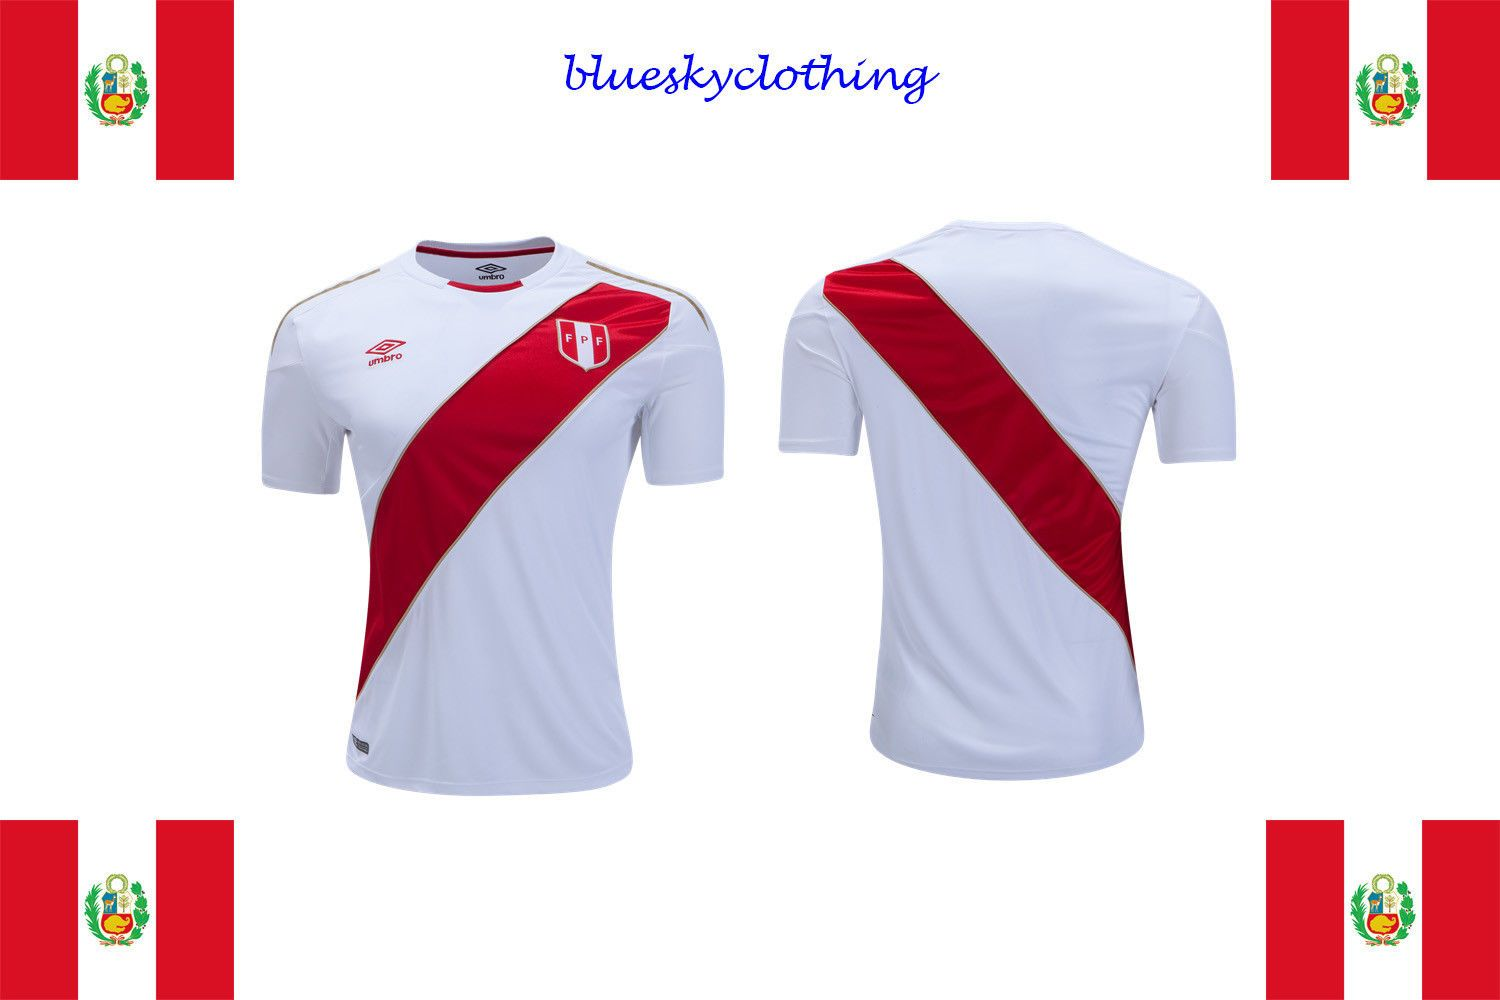 57a74ca3c Peru Home Soccer Jersey World Cup Russia 2018 Discount Price 59.99 Free  Shipping Buy it Now